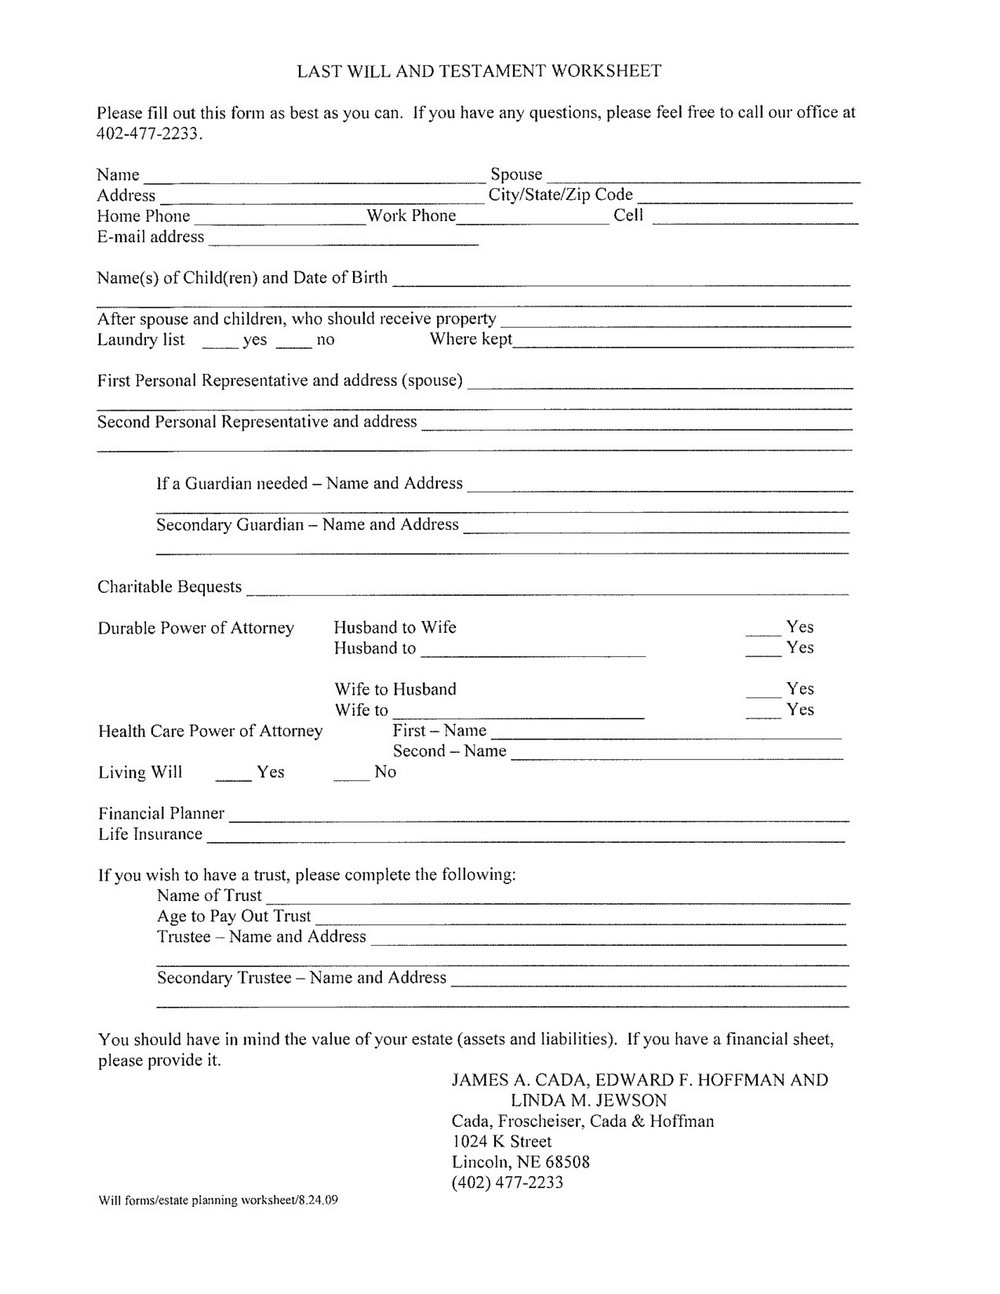 Free Printable Last Will And Testament Forms Ontario | Resume Examples In Last Will And Testament Blank Forms